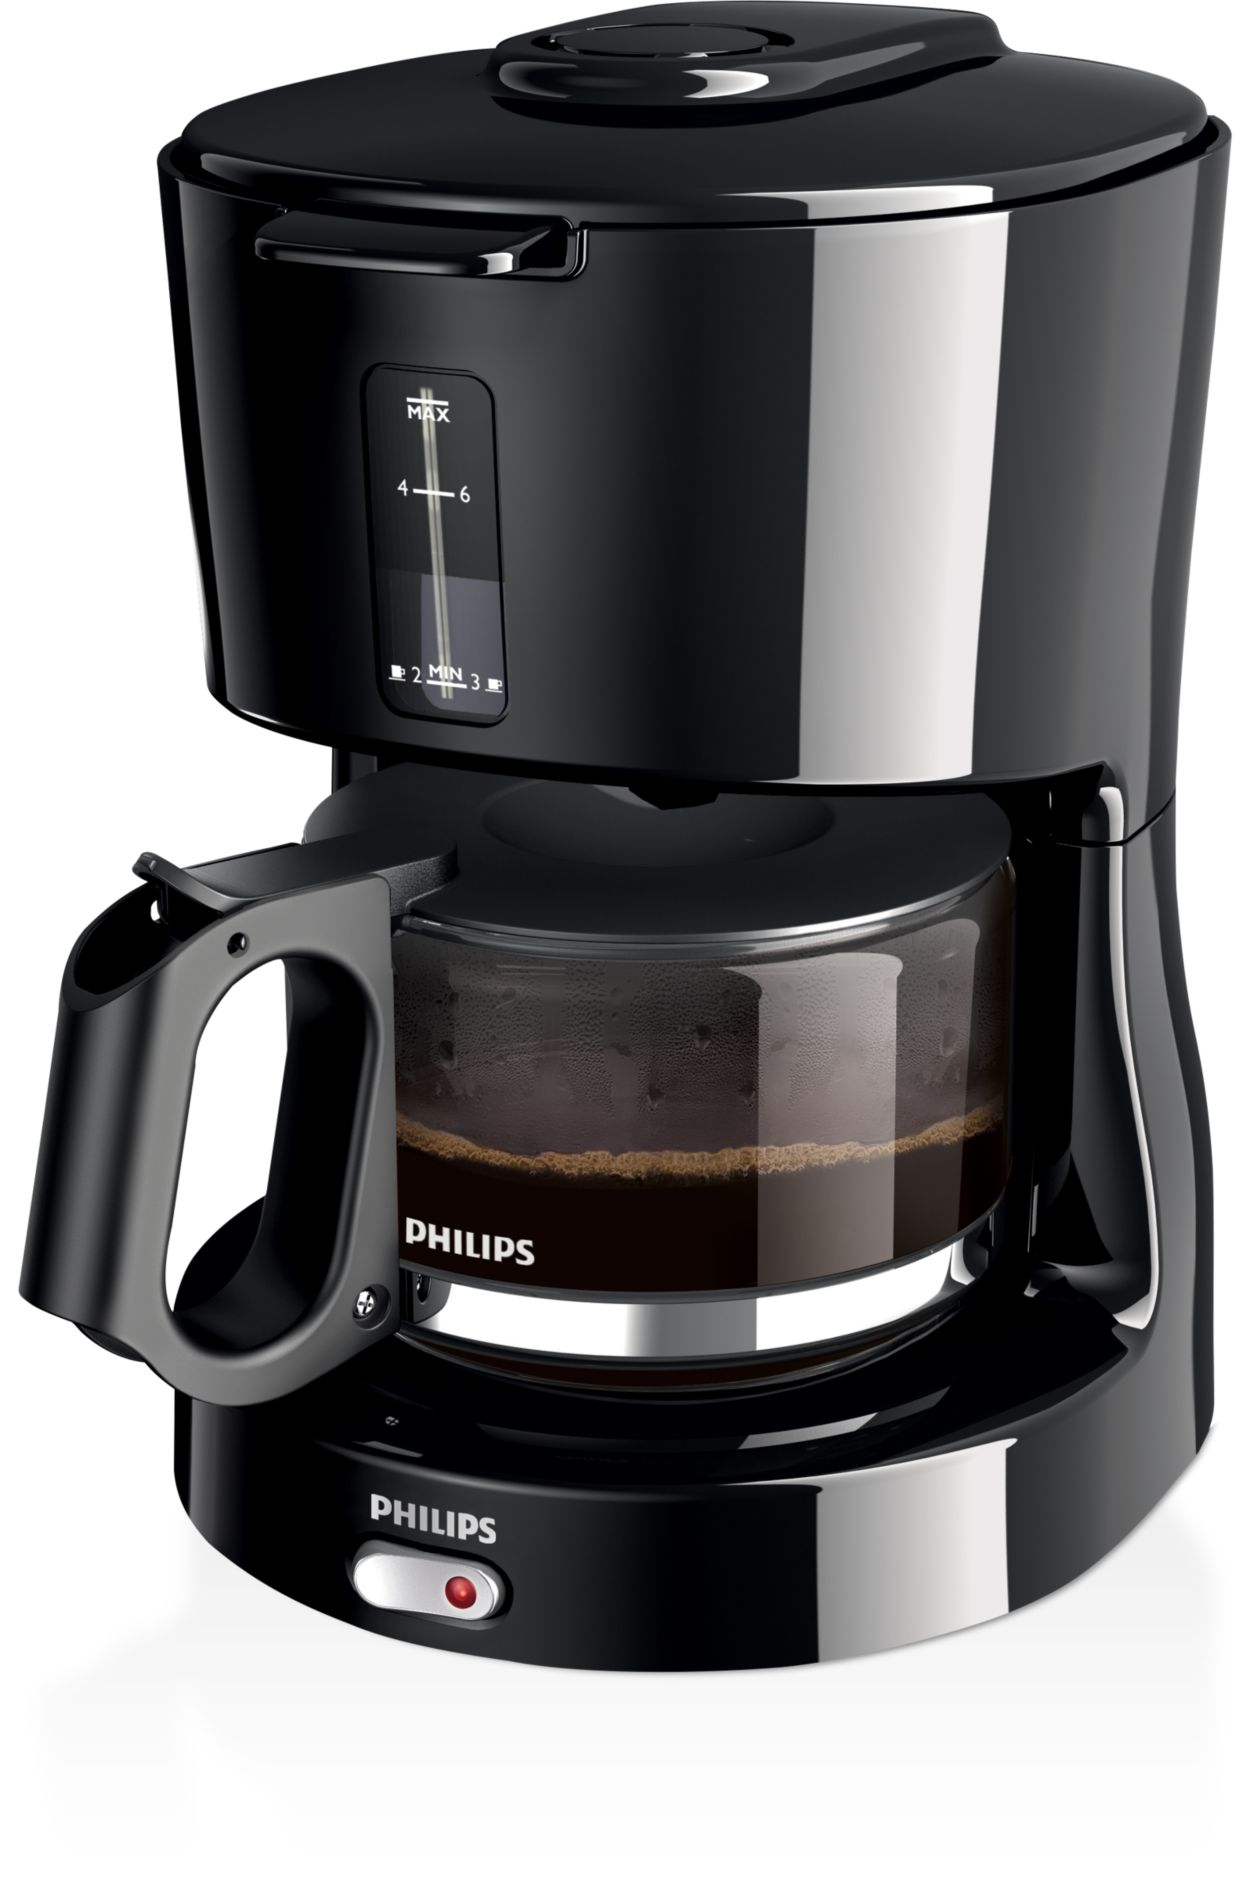 How Does Philips Coffee Maker Work : Daily Collection Coffee maker HD7450/20 Philips